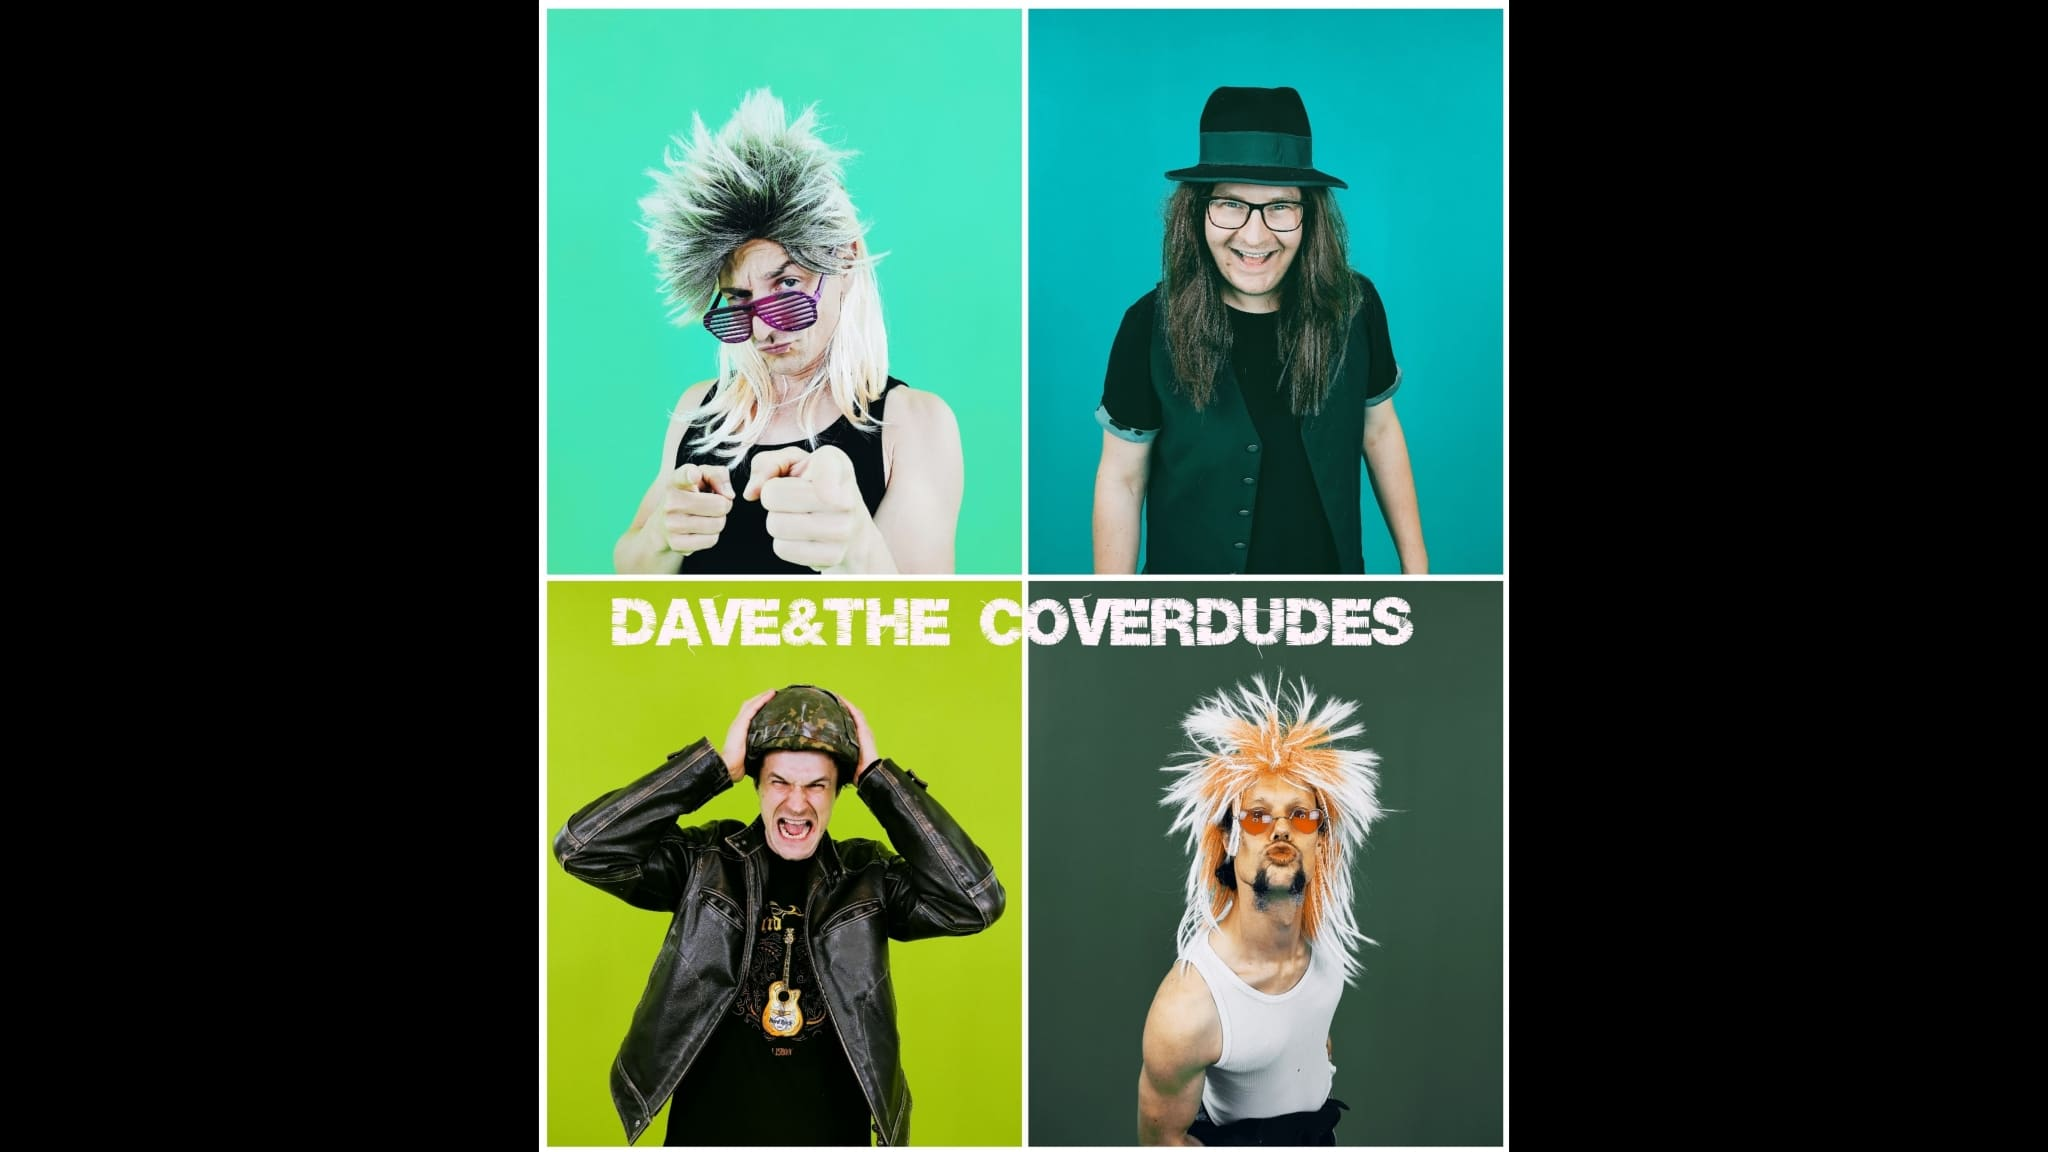 Dave & the Cover Dudes